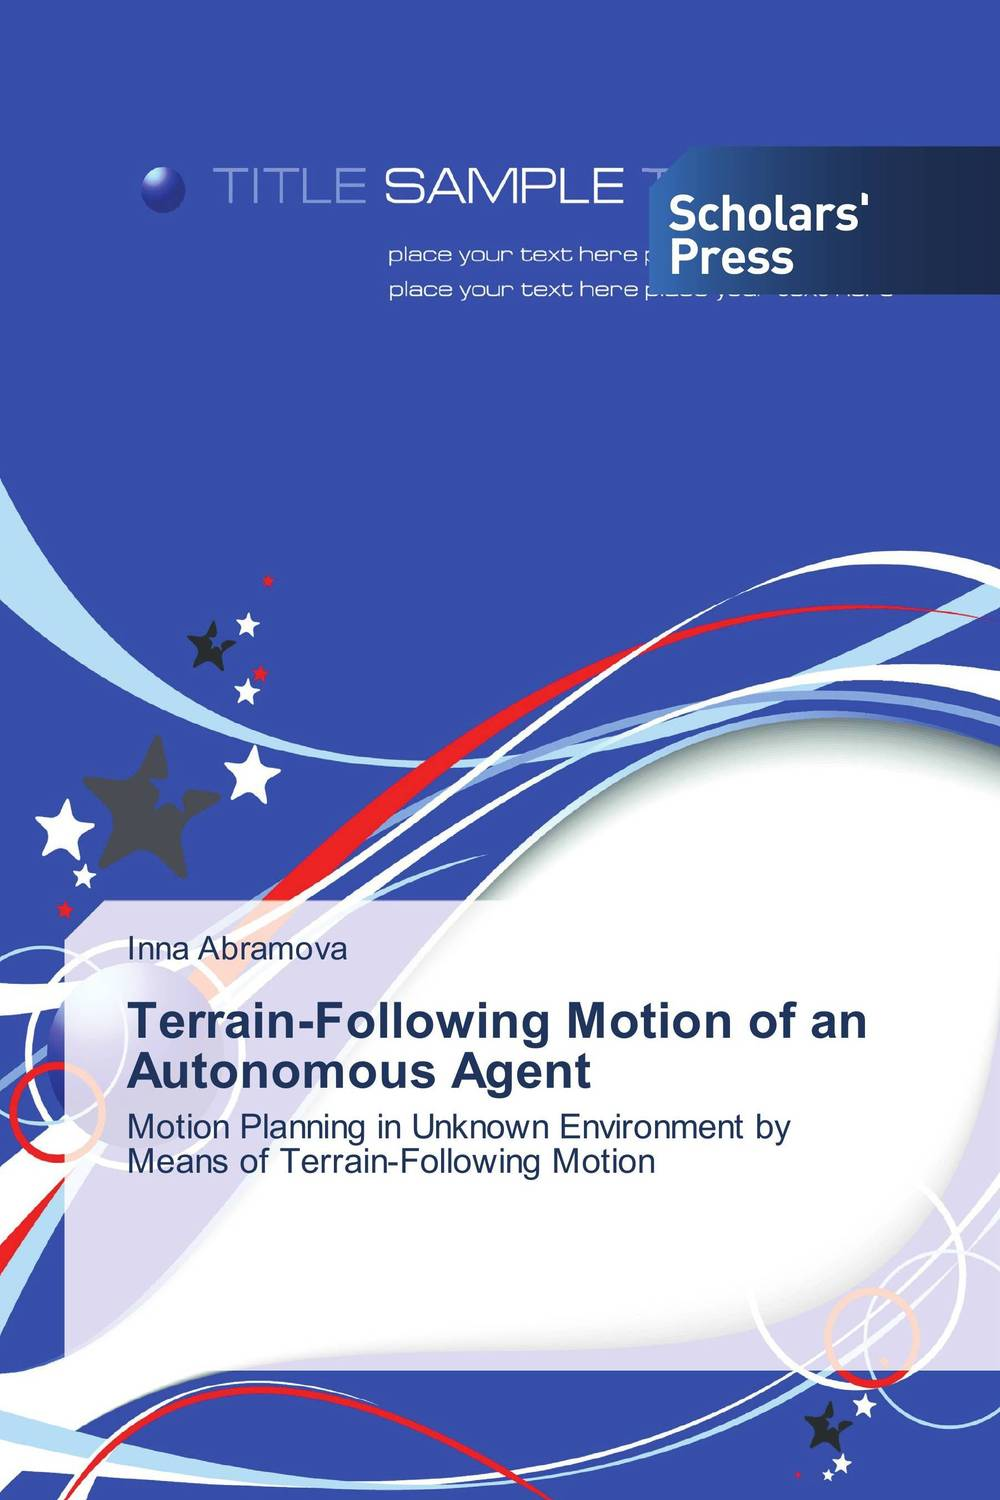 Terrain-Following Motion of an Autonomous Agent optimized–motion planning